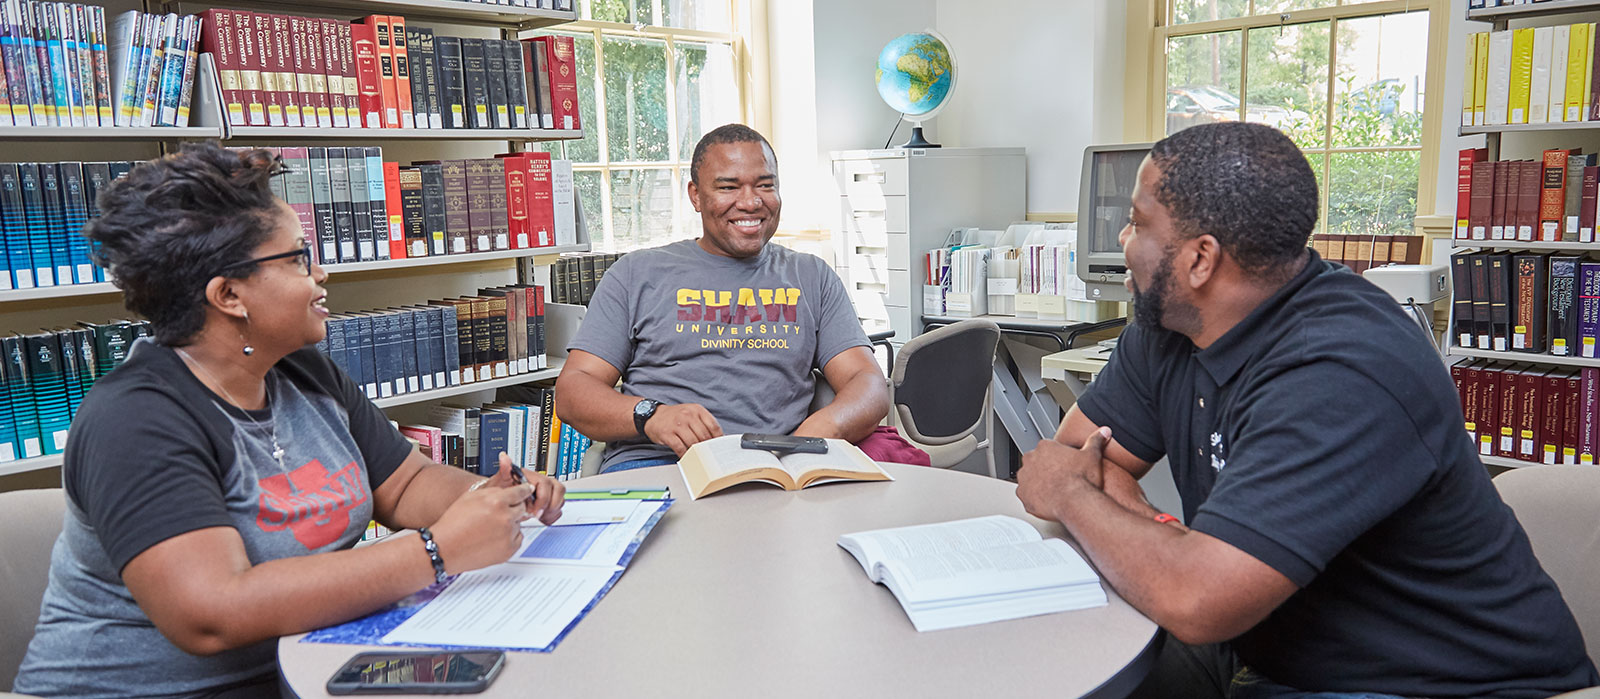 Feature - Divinity Students in Library